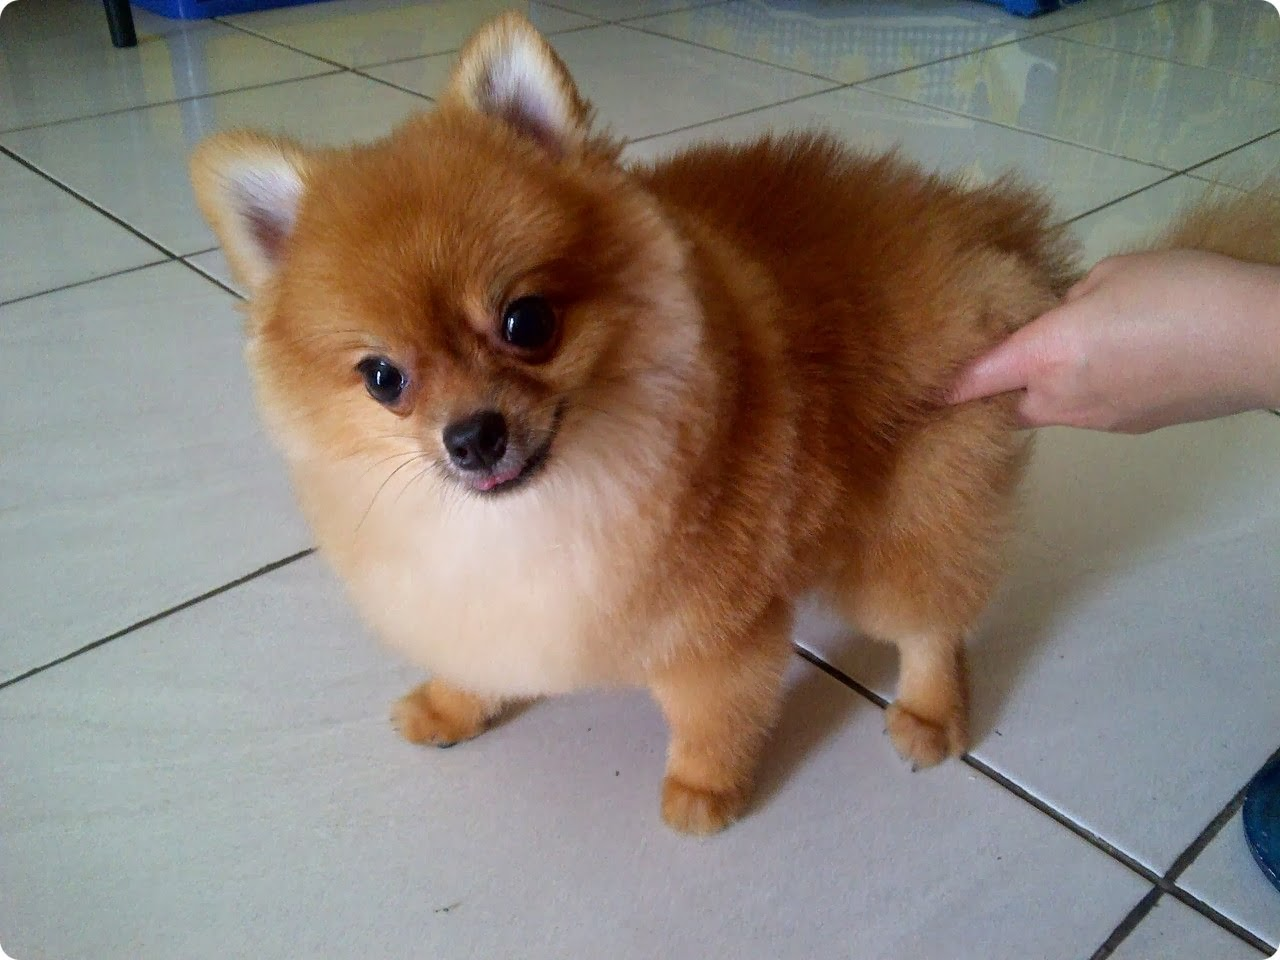 ... 11> Images For - Teacup Pomeranian Husky Puppies For Sale